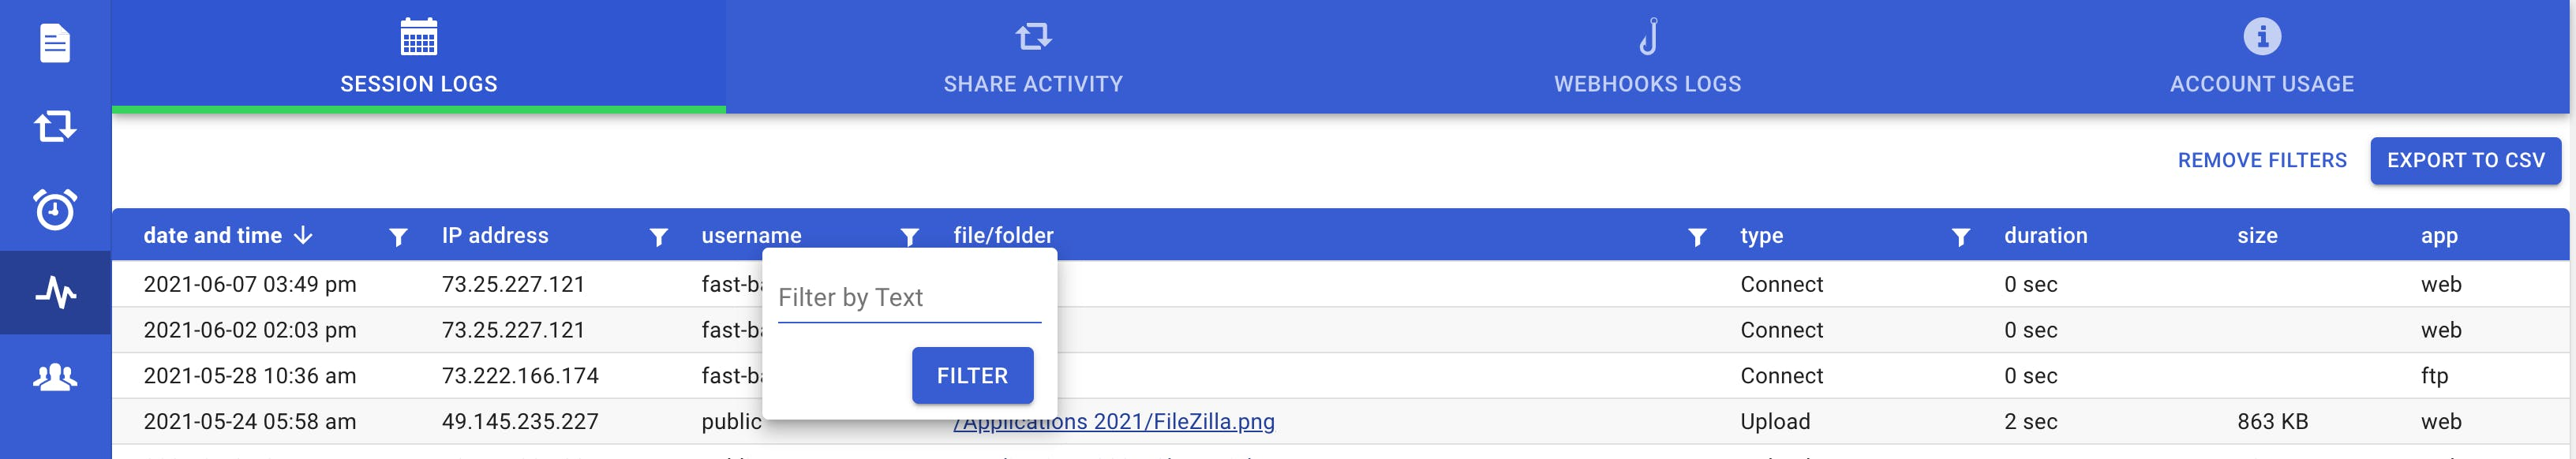 Secure sharing activity logs filters.